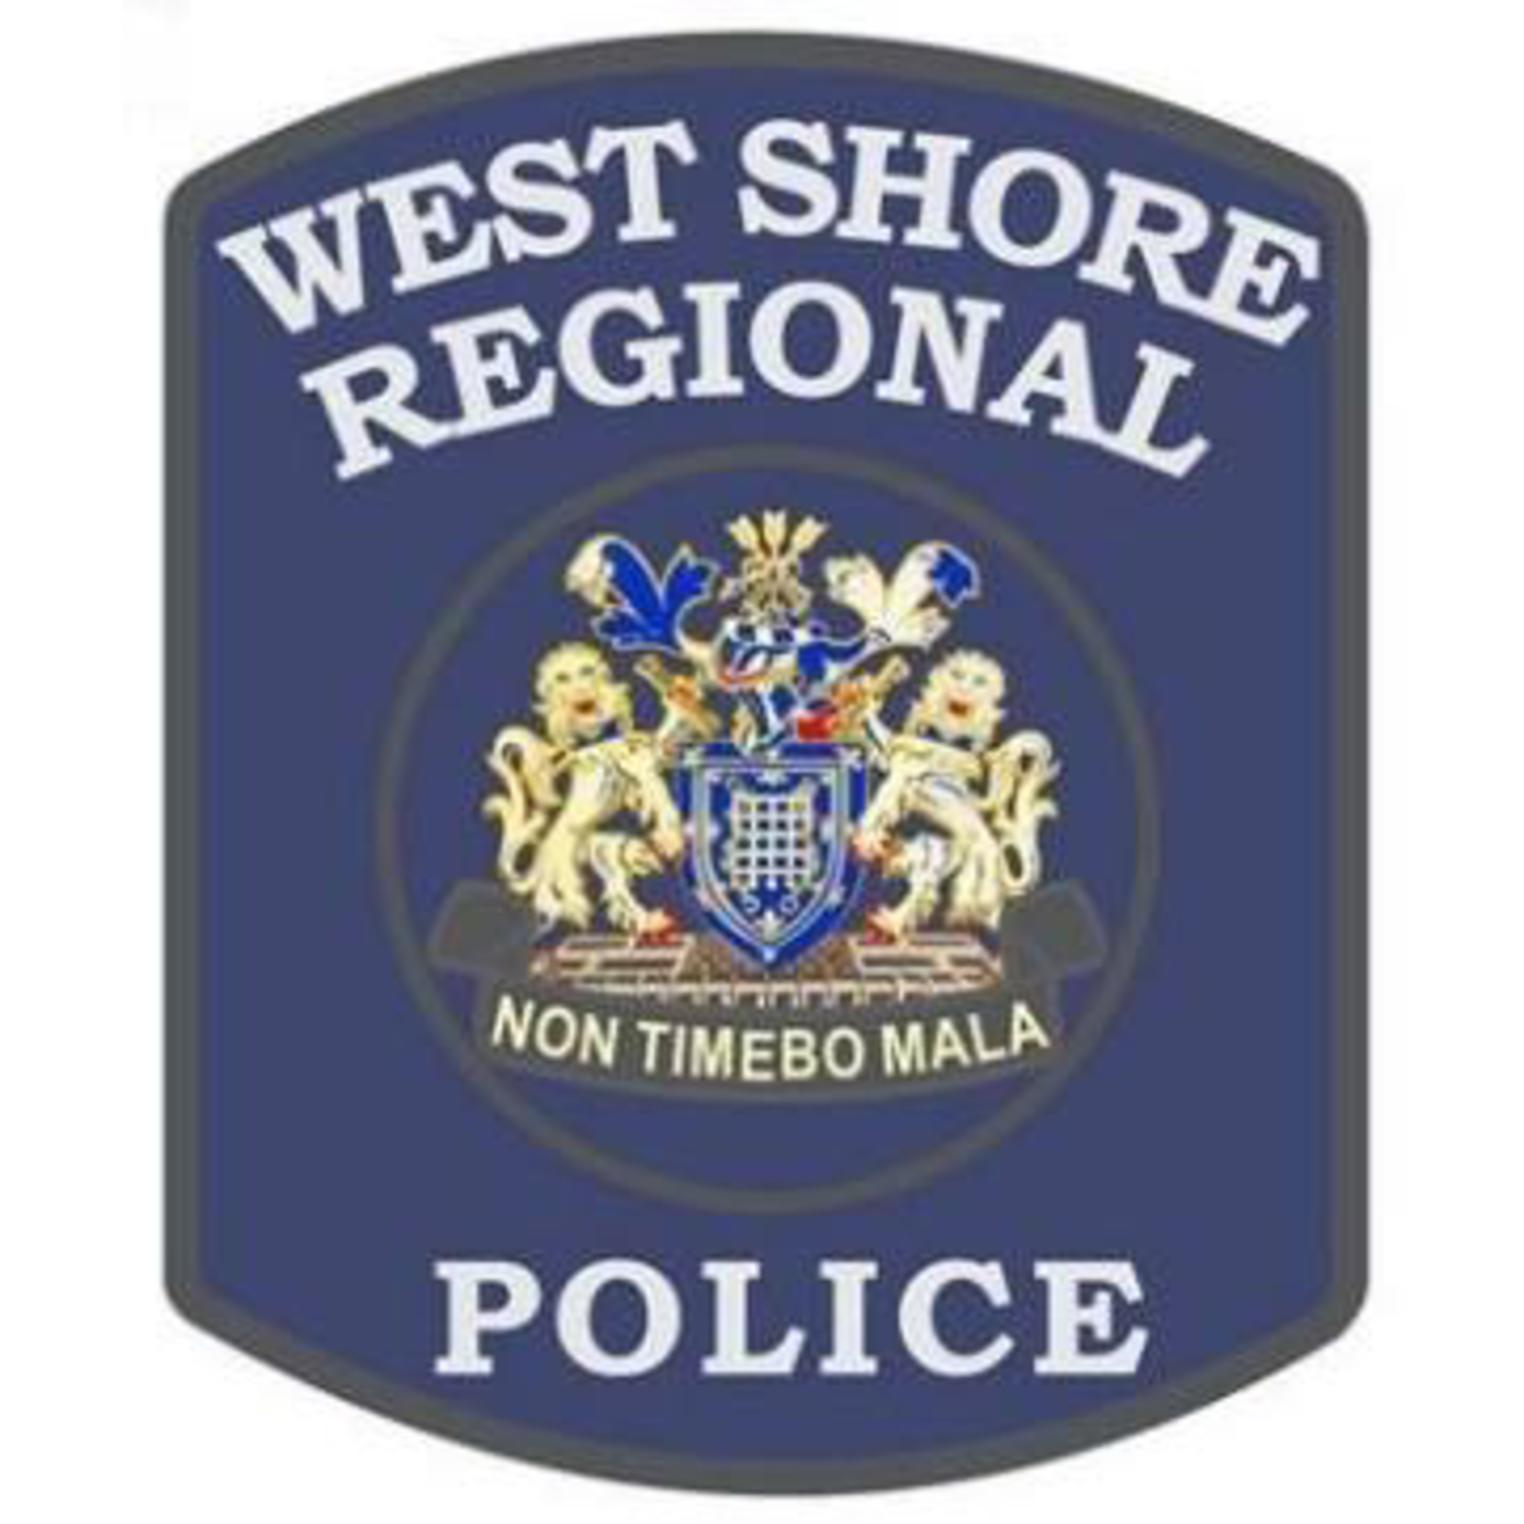 West Shore Regional Police Department